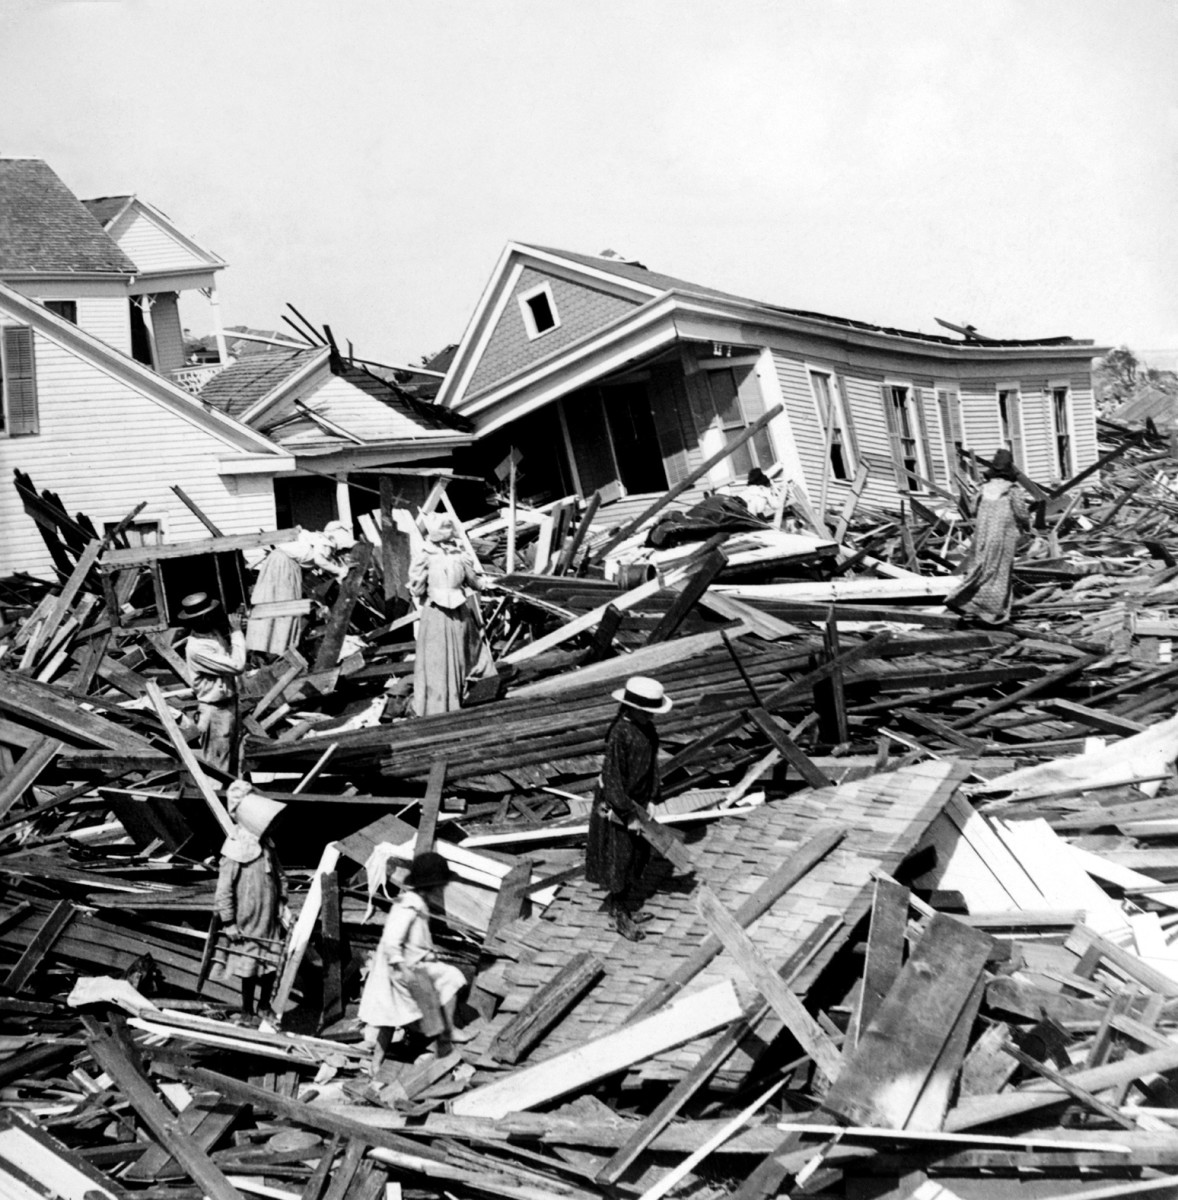 Galveston search the wreckage of the 1900 Hurricane,